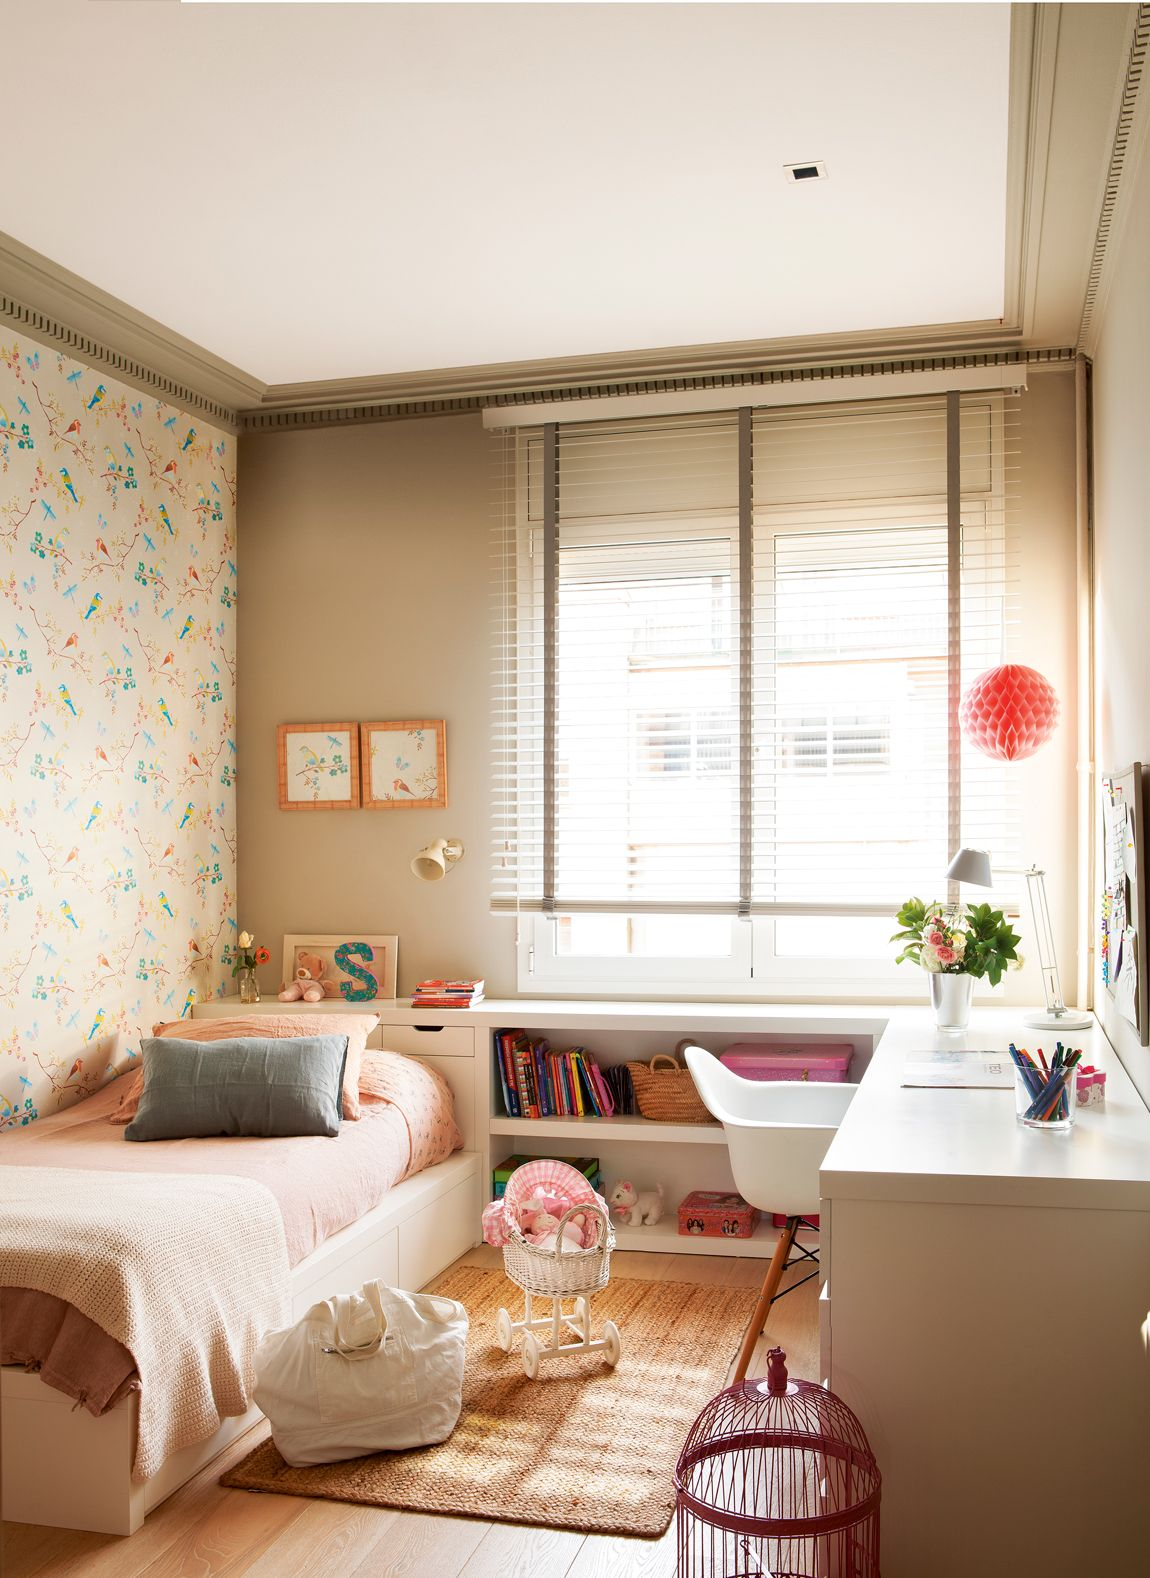 Bedroom Ideas for Girls. When brainstorming on youthful space ideas, the  most important thing to remember is that their room is an expression